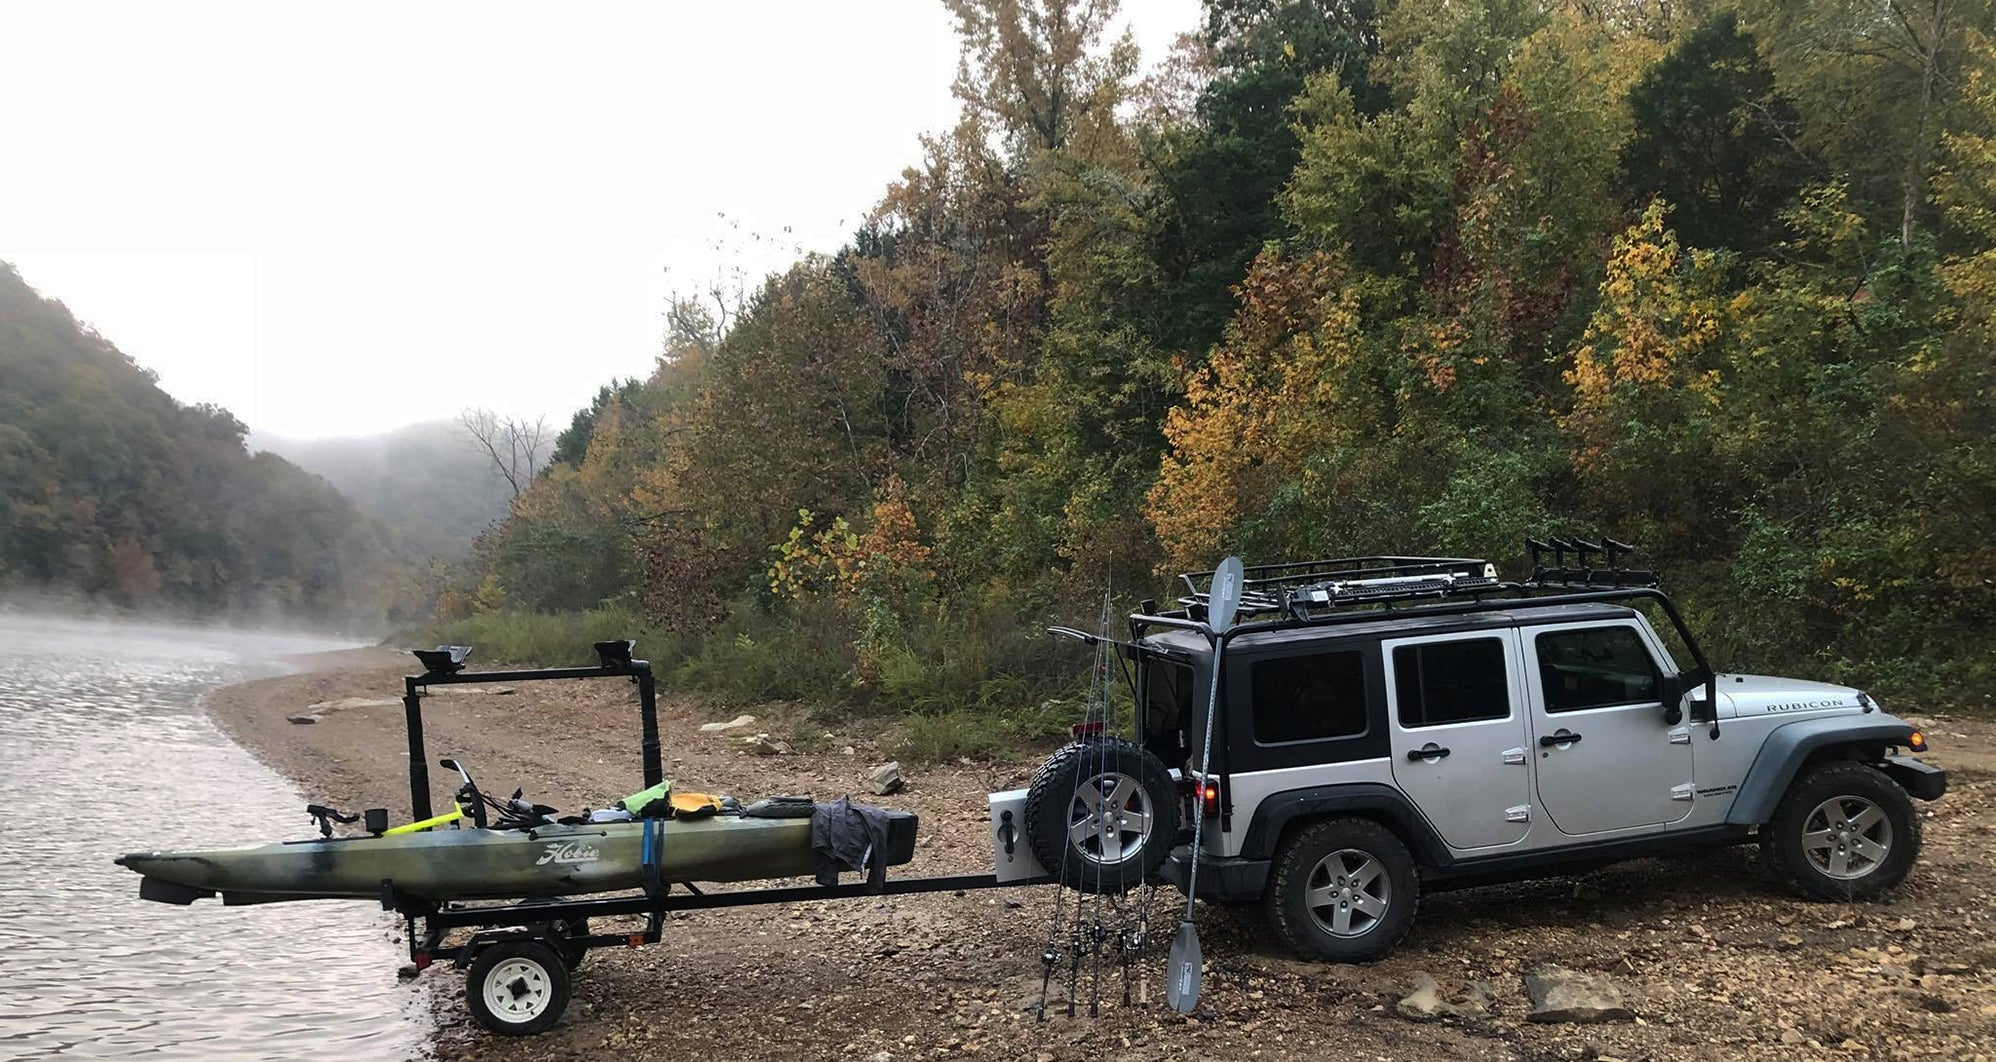 Jeep Wrangler 4 door with a trailer backed up to the lake.  Kayak is on the trailer being ready to launch.